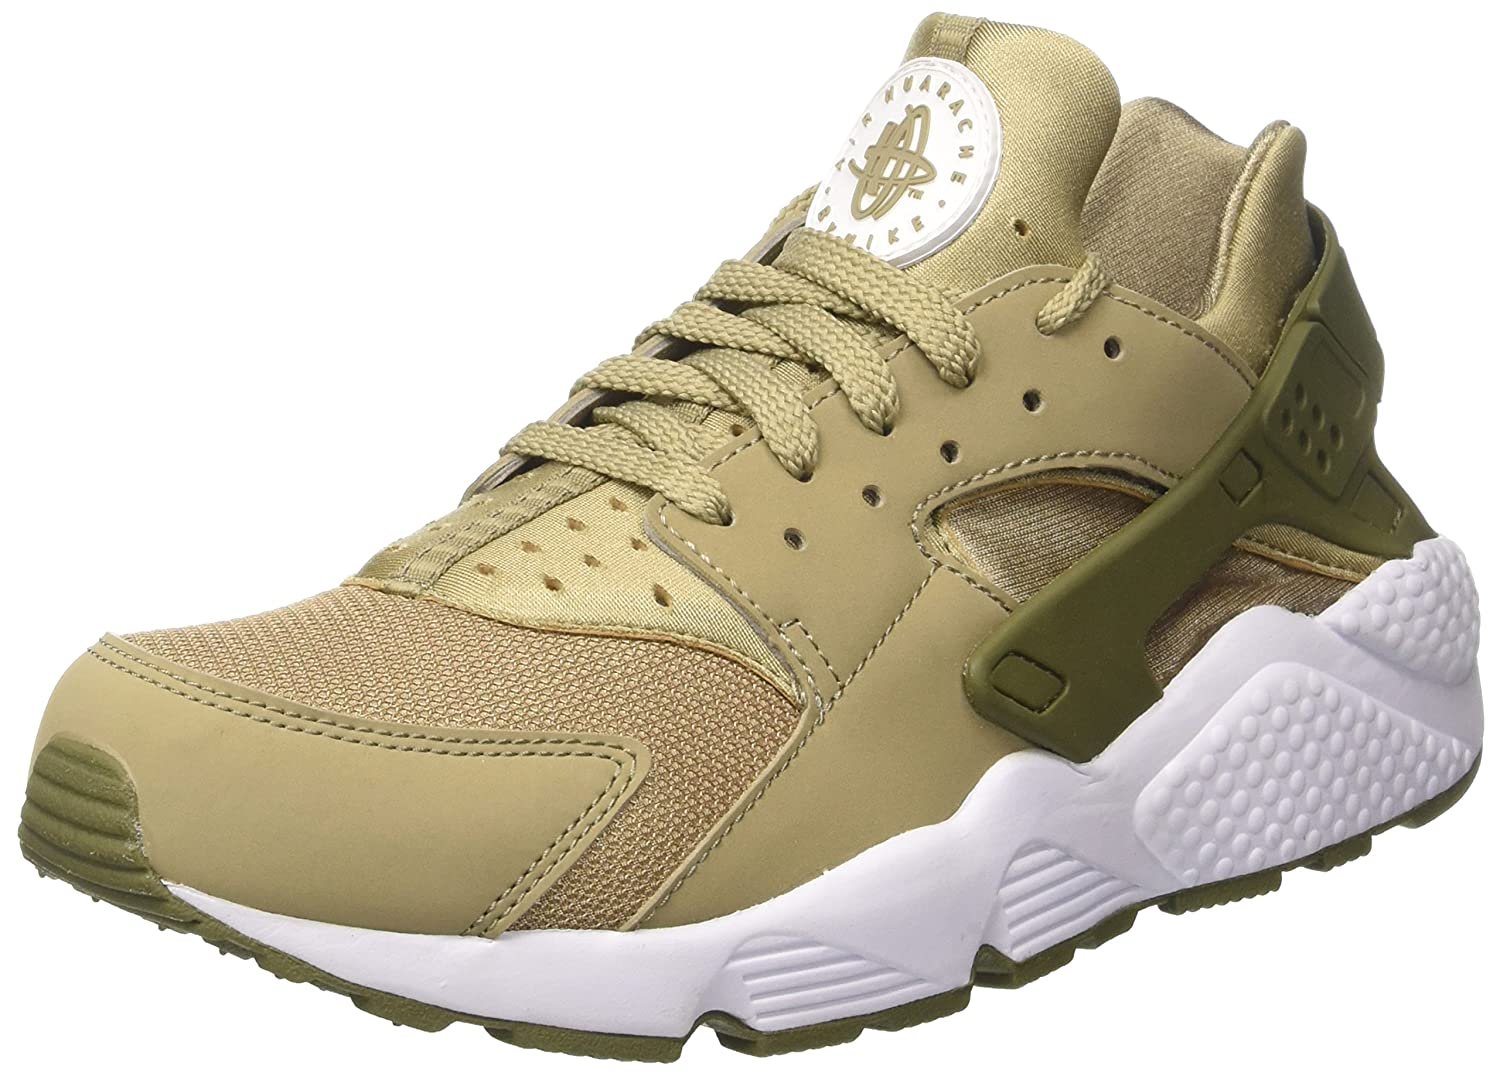 quality design d1589 b2e71 Nike 318429-200 Men AIR Huarache Khaki Medium Olive White Buy Online at  Low Prices in India - Amazon.in